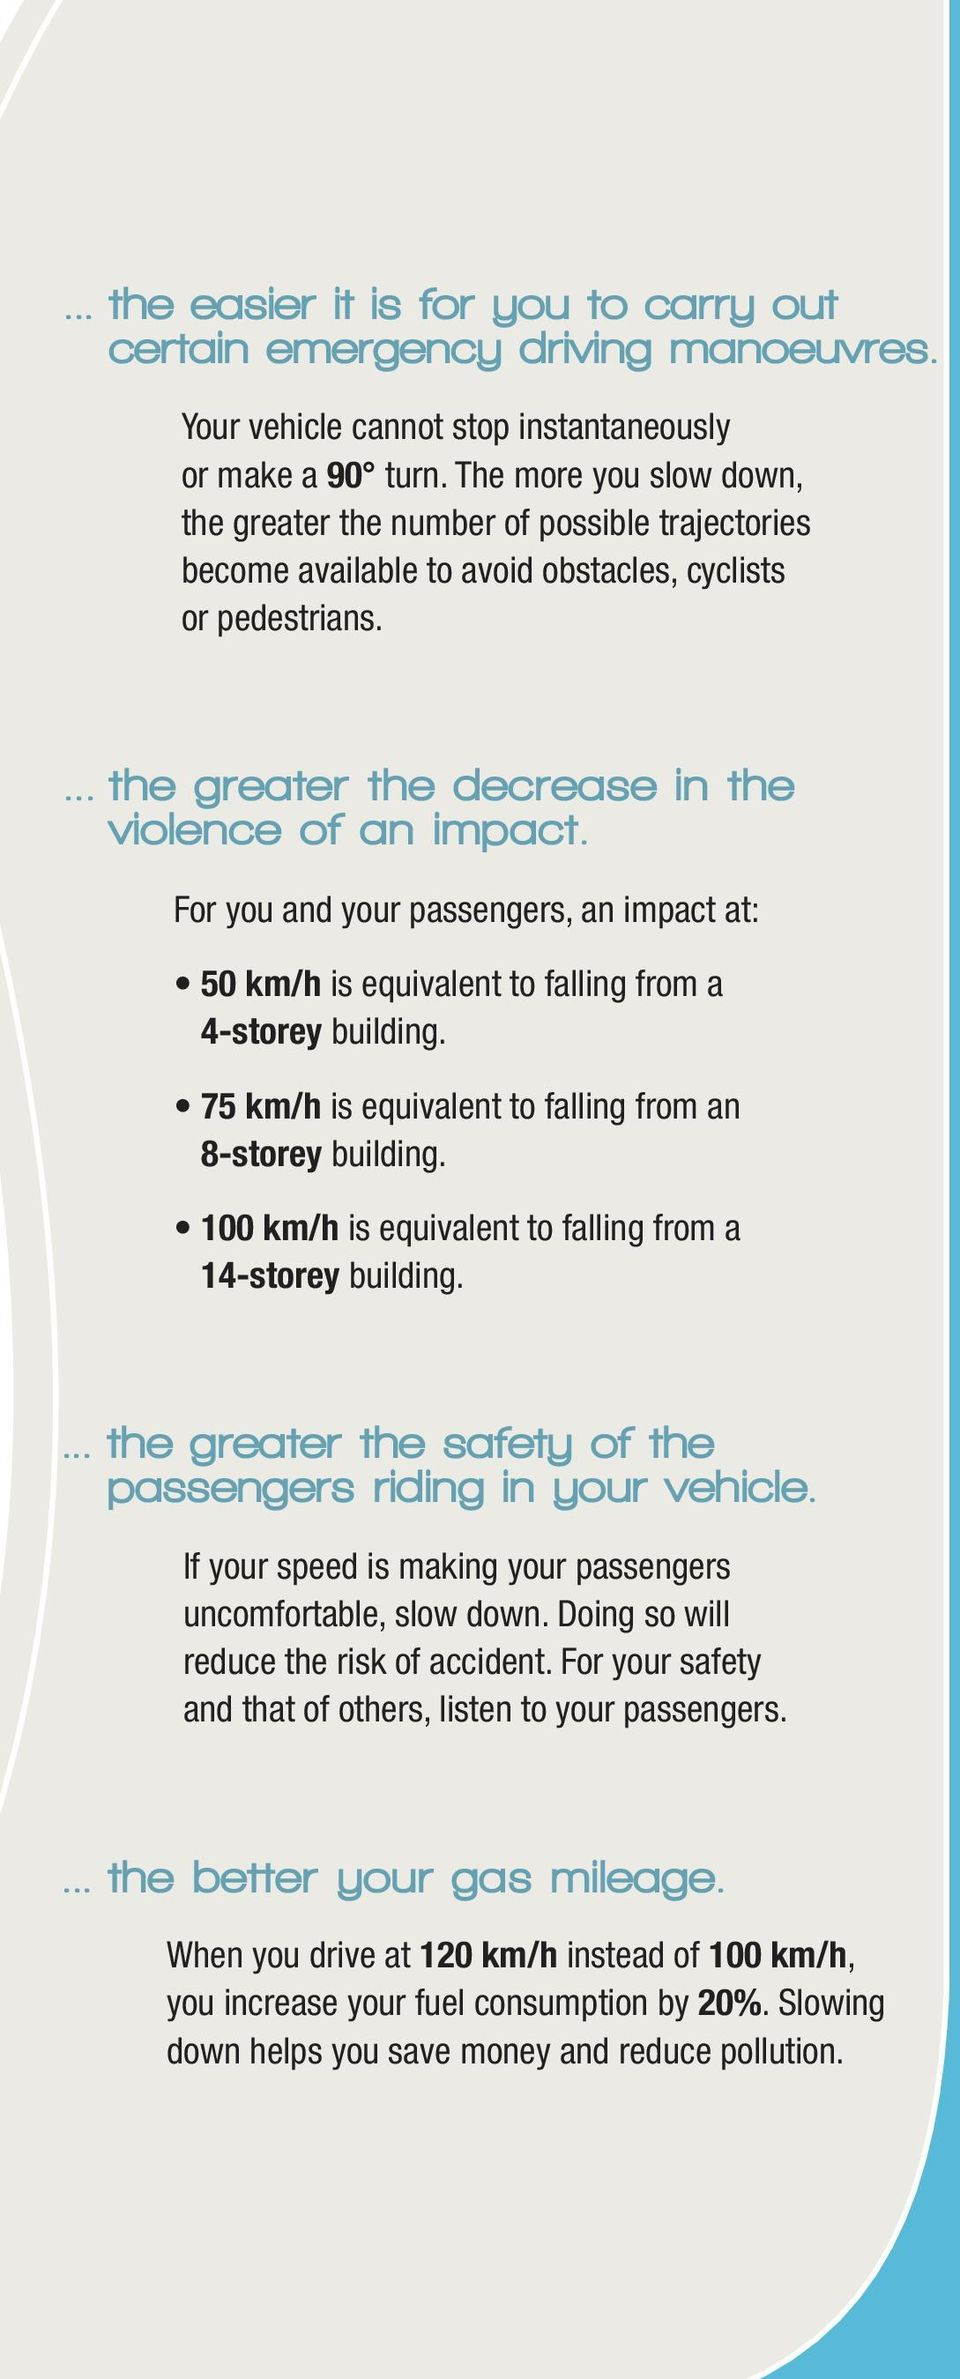 For you and your passengers, an impact at: 50 km/h is equivalent to falling from a 4-storey building. 75 km/h is equivalent to falling from an 8-storey building.